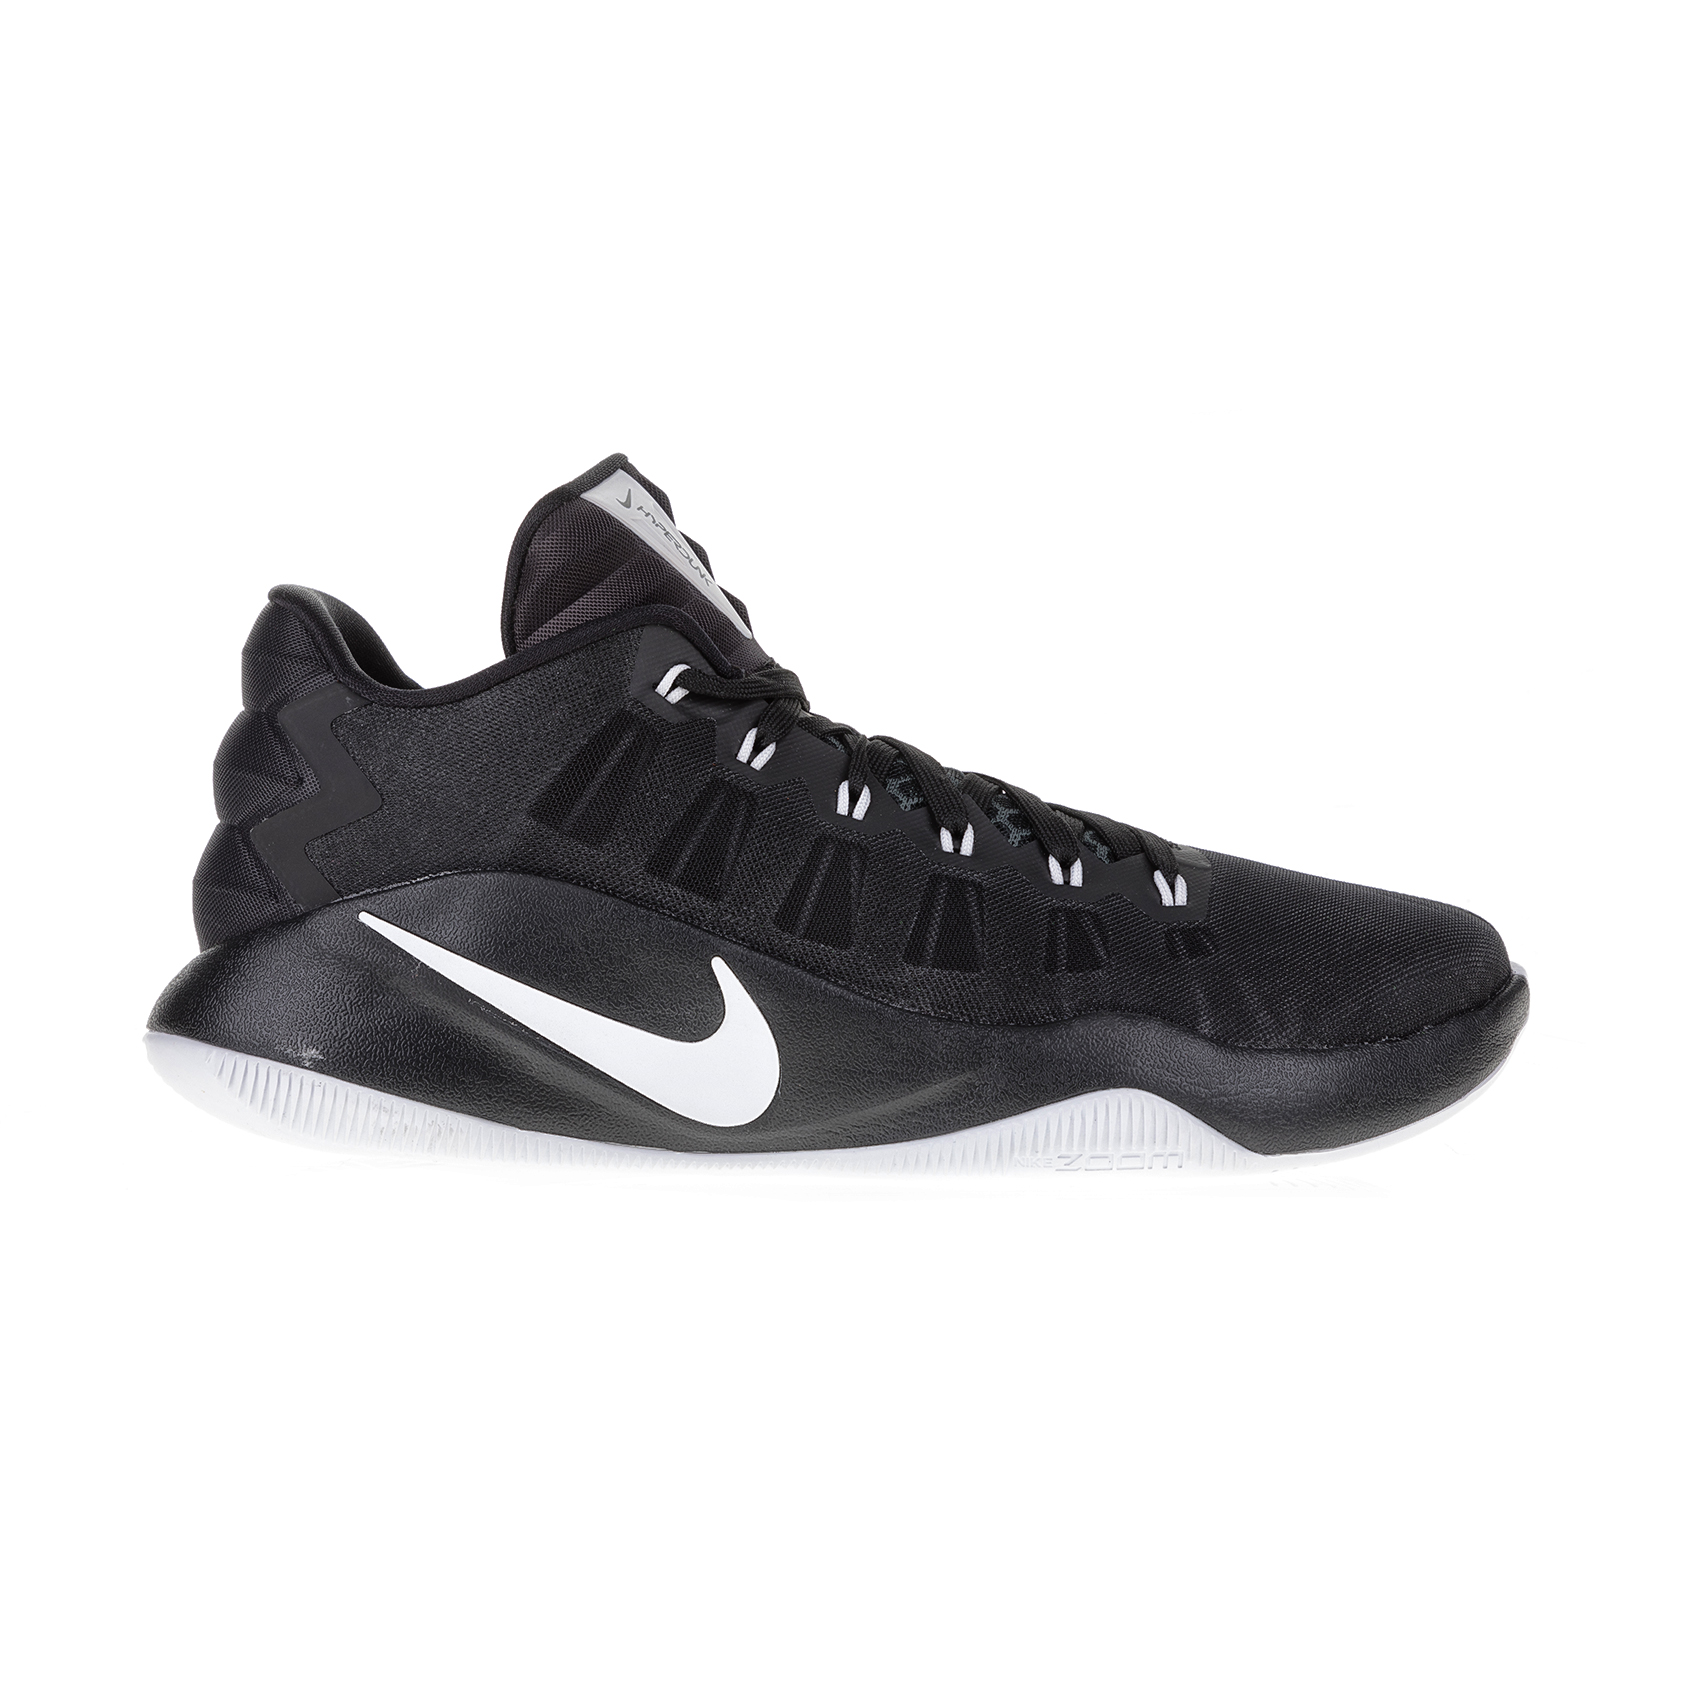 NIKE – Ανδρικά παπούτσια μπάσκετ NIKE HYPERDUNK 2016 LOW μαύρα